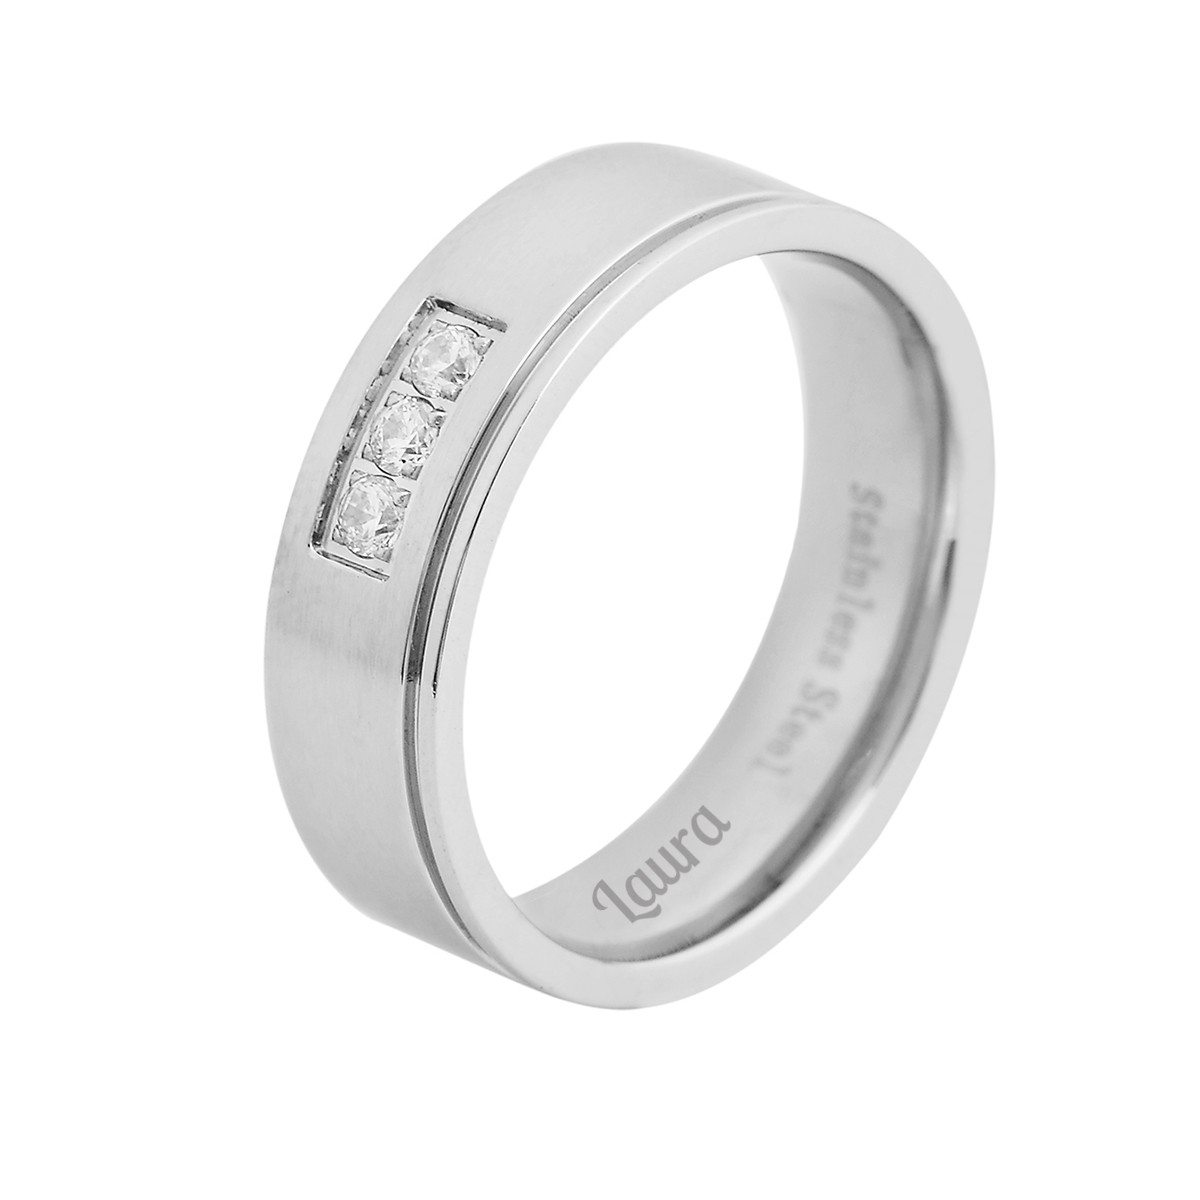 PERSONALIZED PARTNER RING WOMANS VERSION